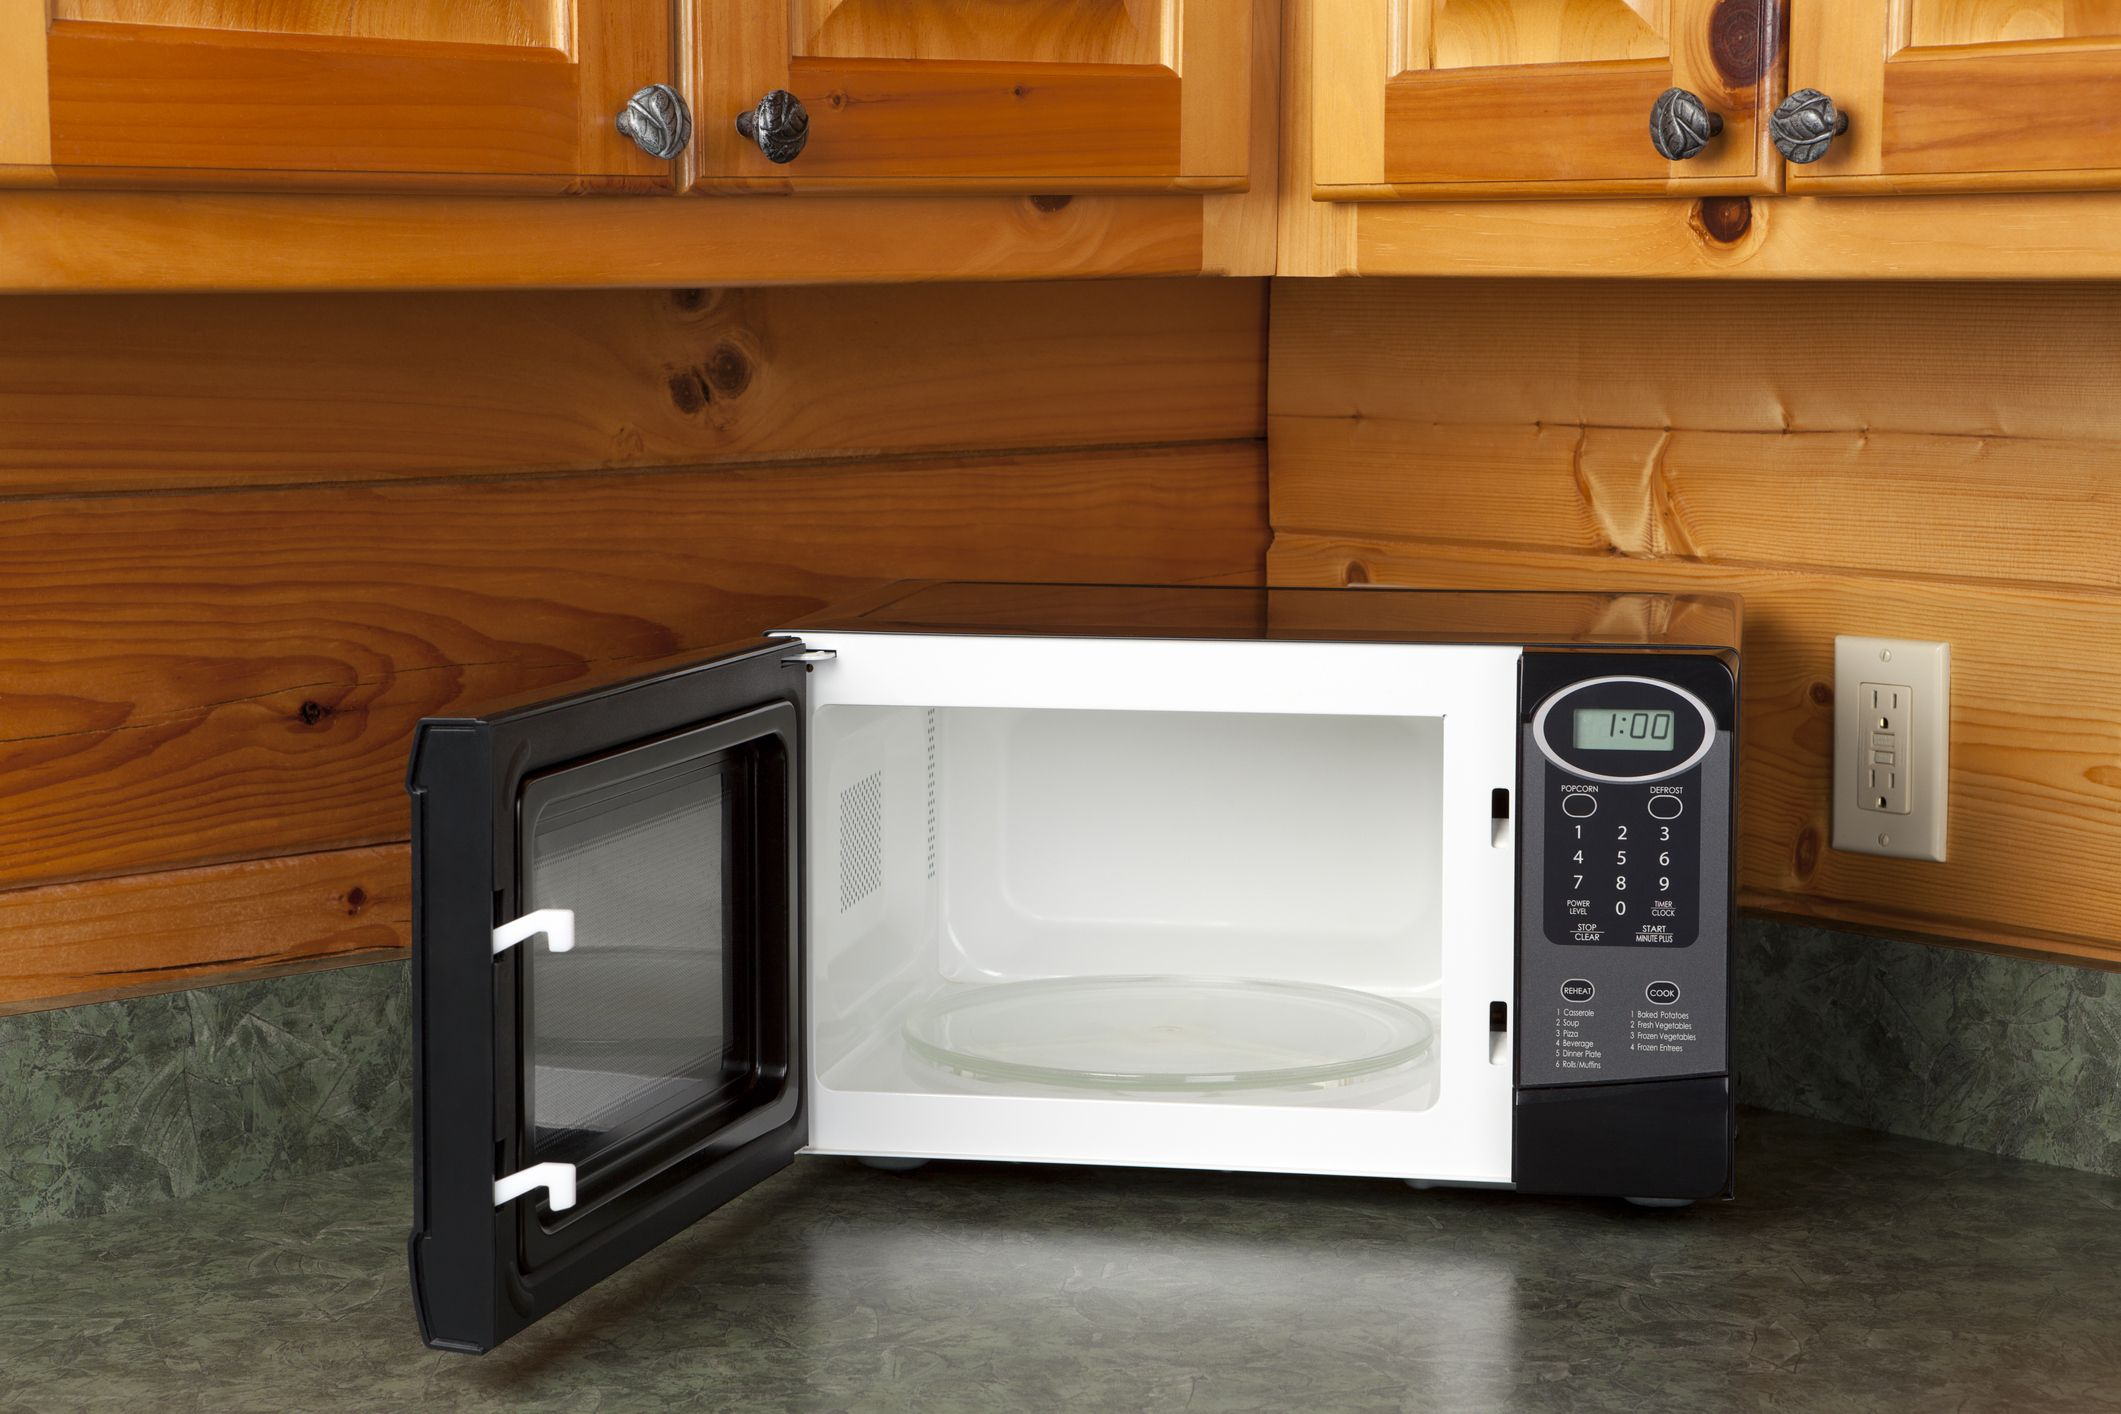 how to clean a microwave with household items